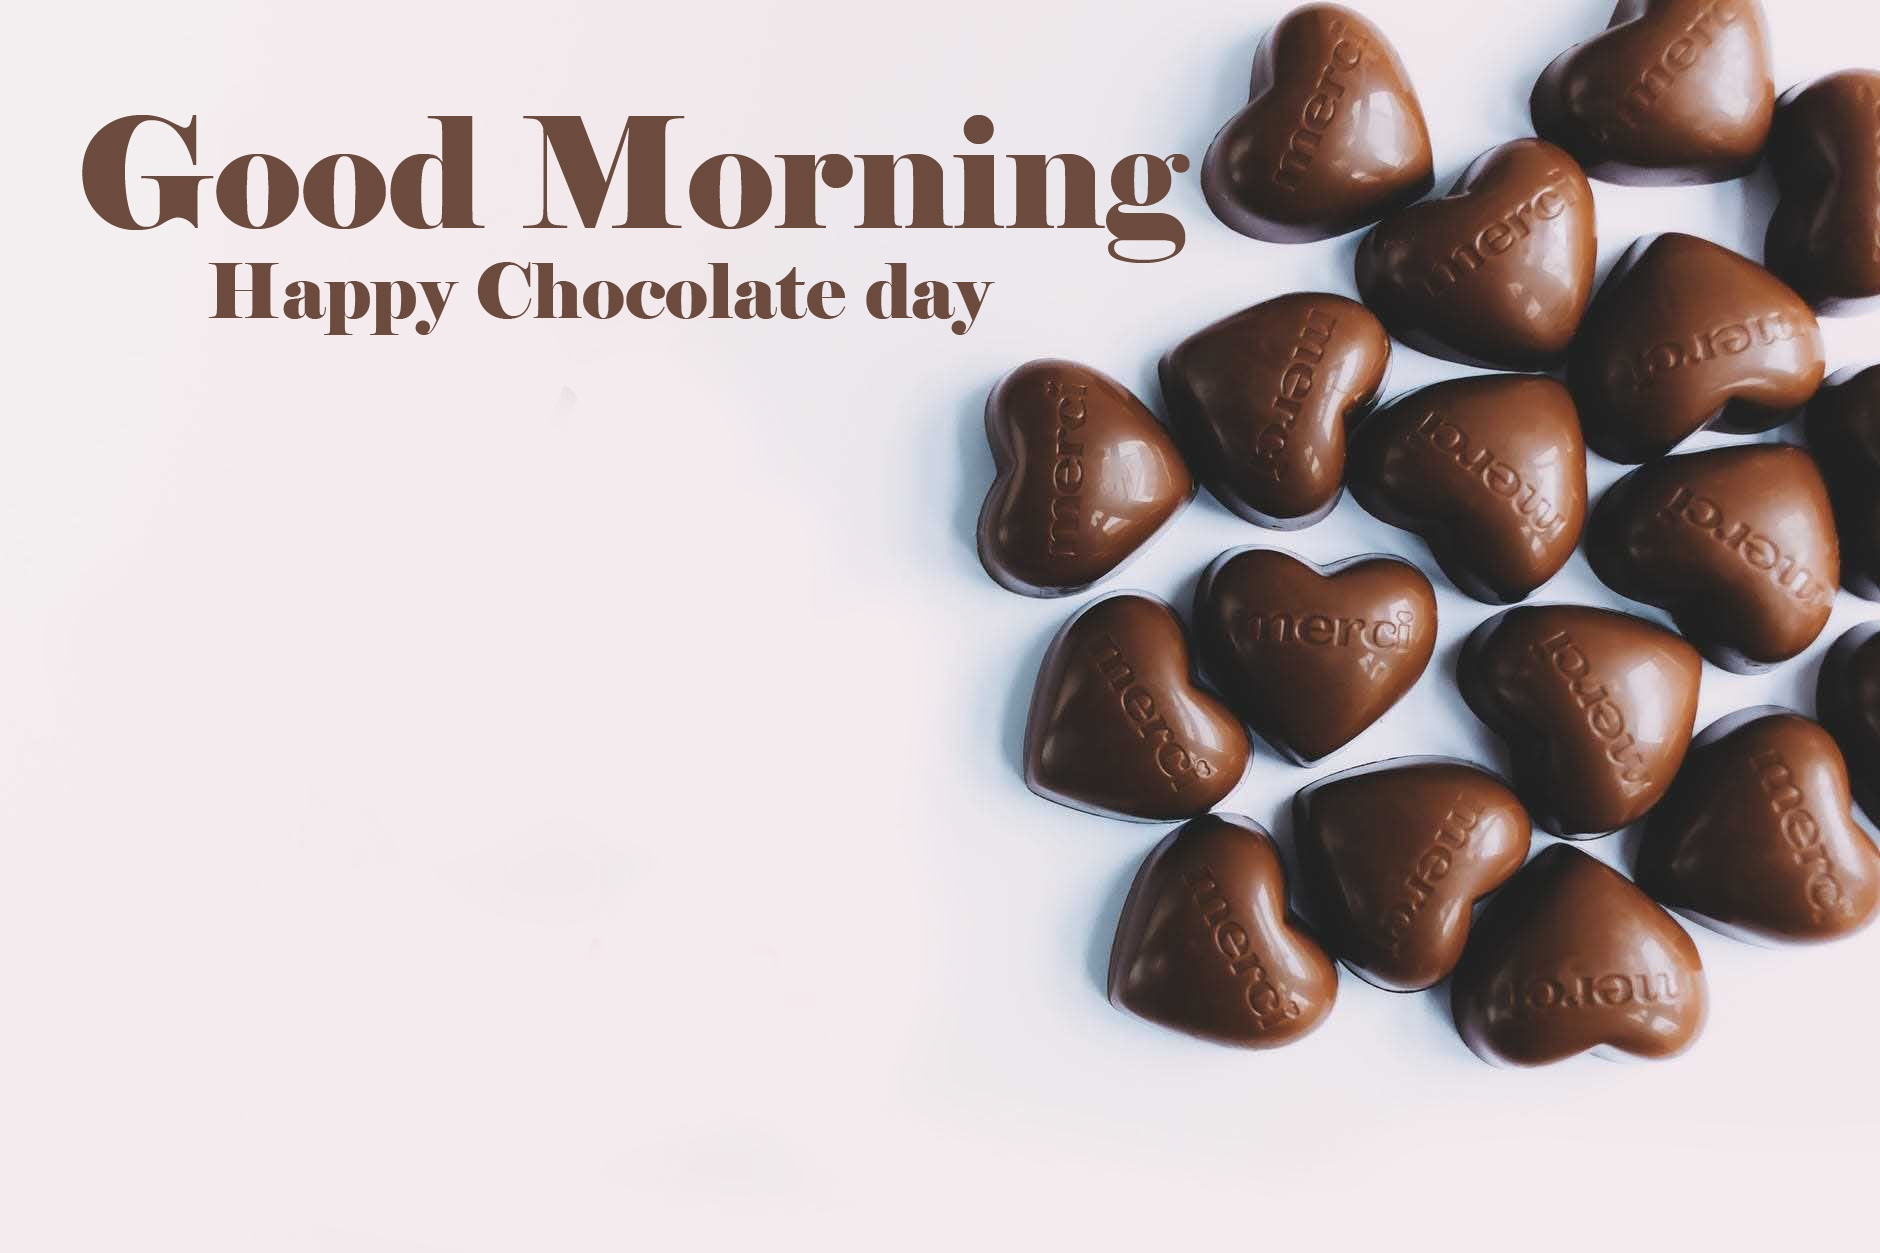 Happy Chocolate Day Good Morning Images Pics Free Download